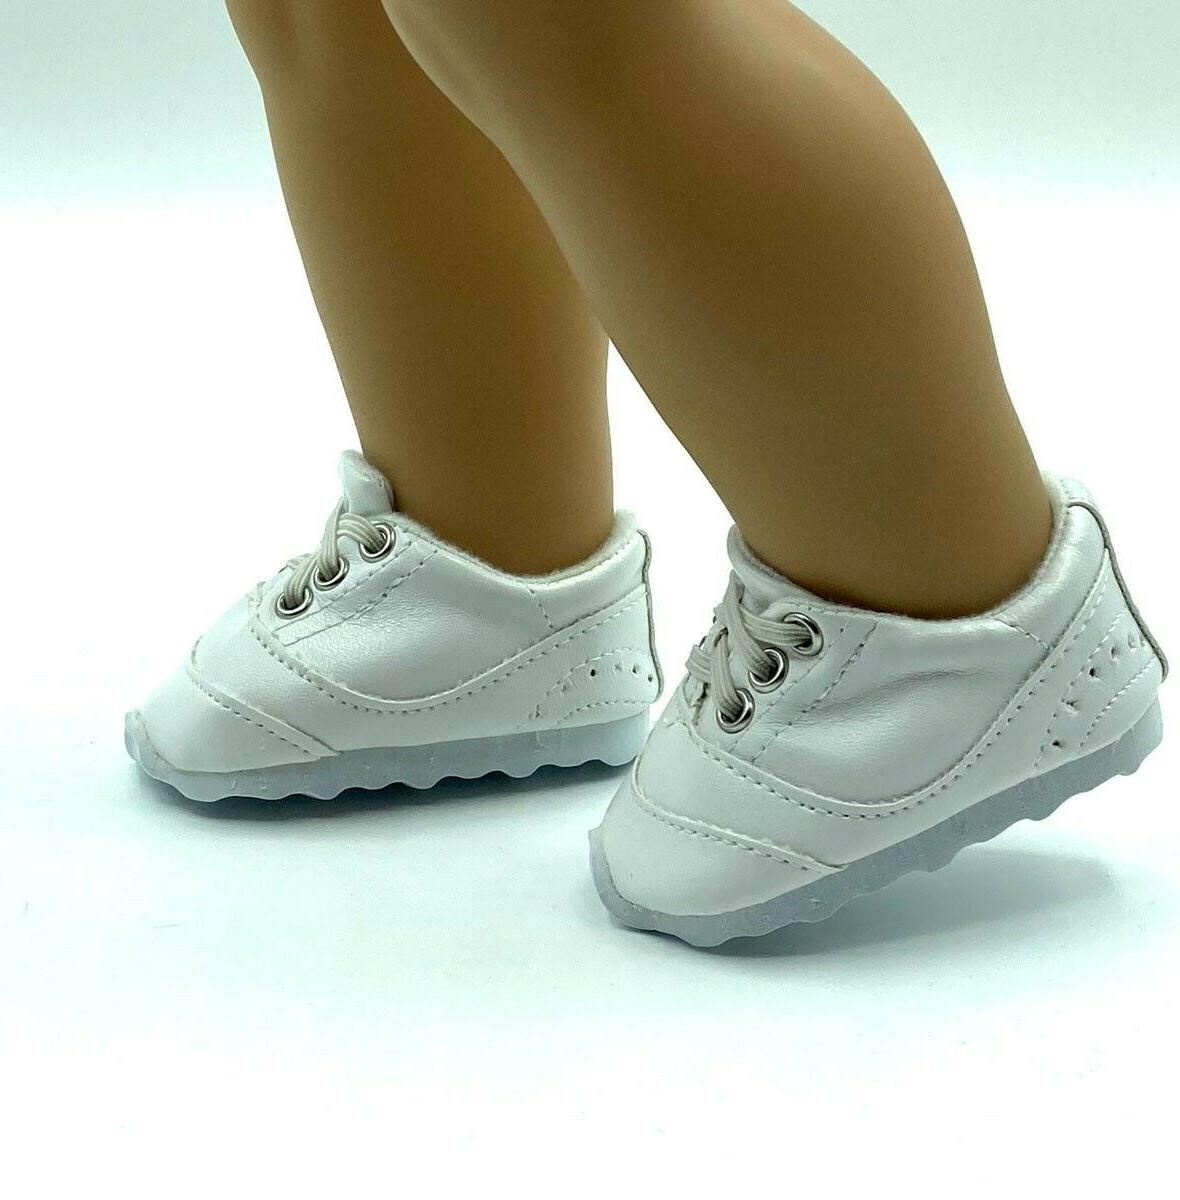 18 Girl Clothes Shoes No Tie Sneakers American seller